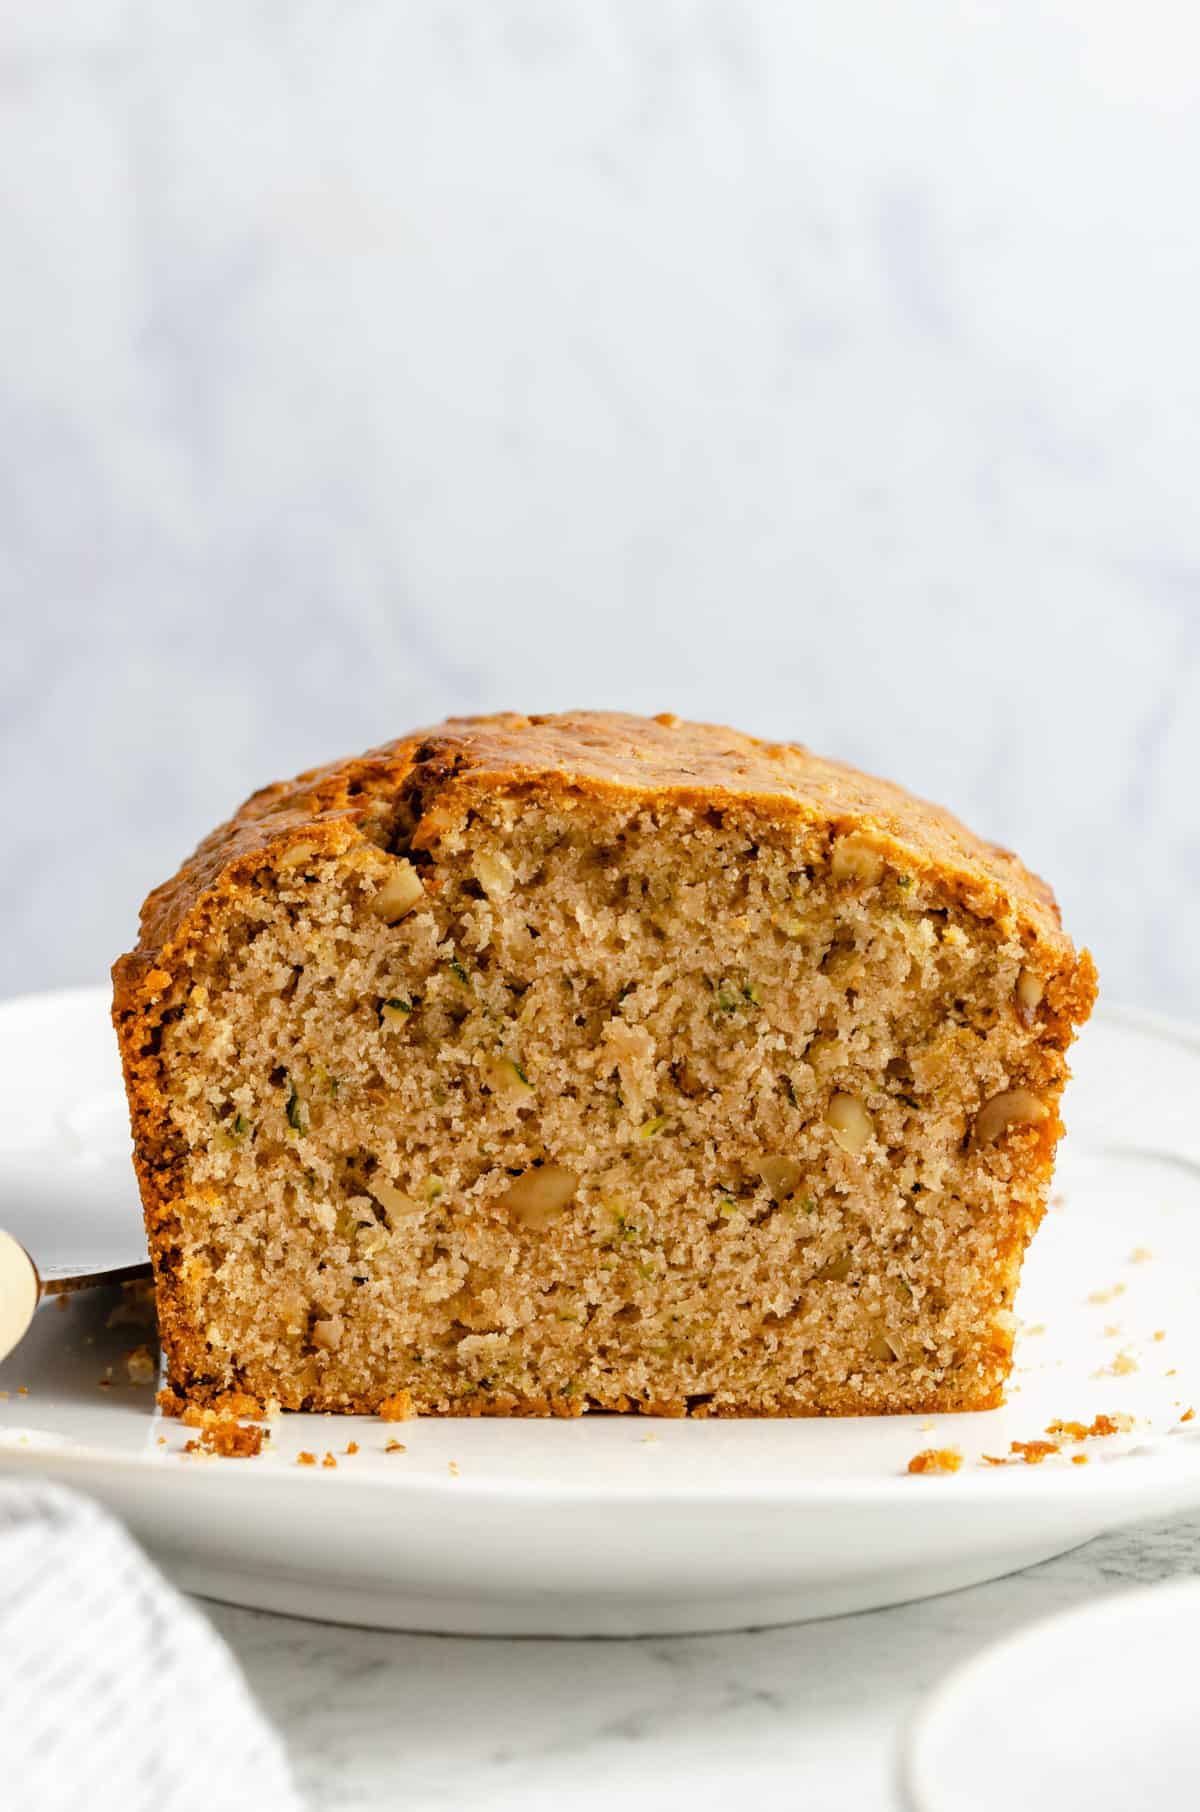 Loaf of bread with grated zucchini and walnuts.